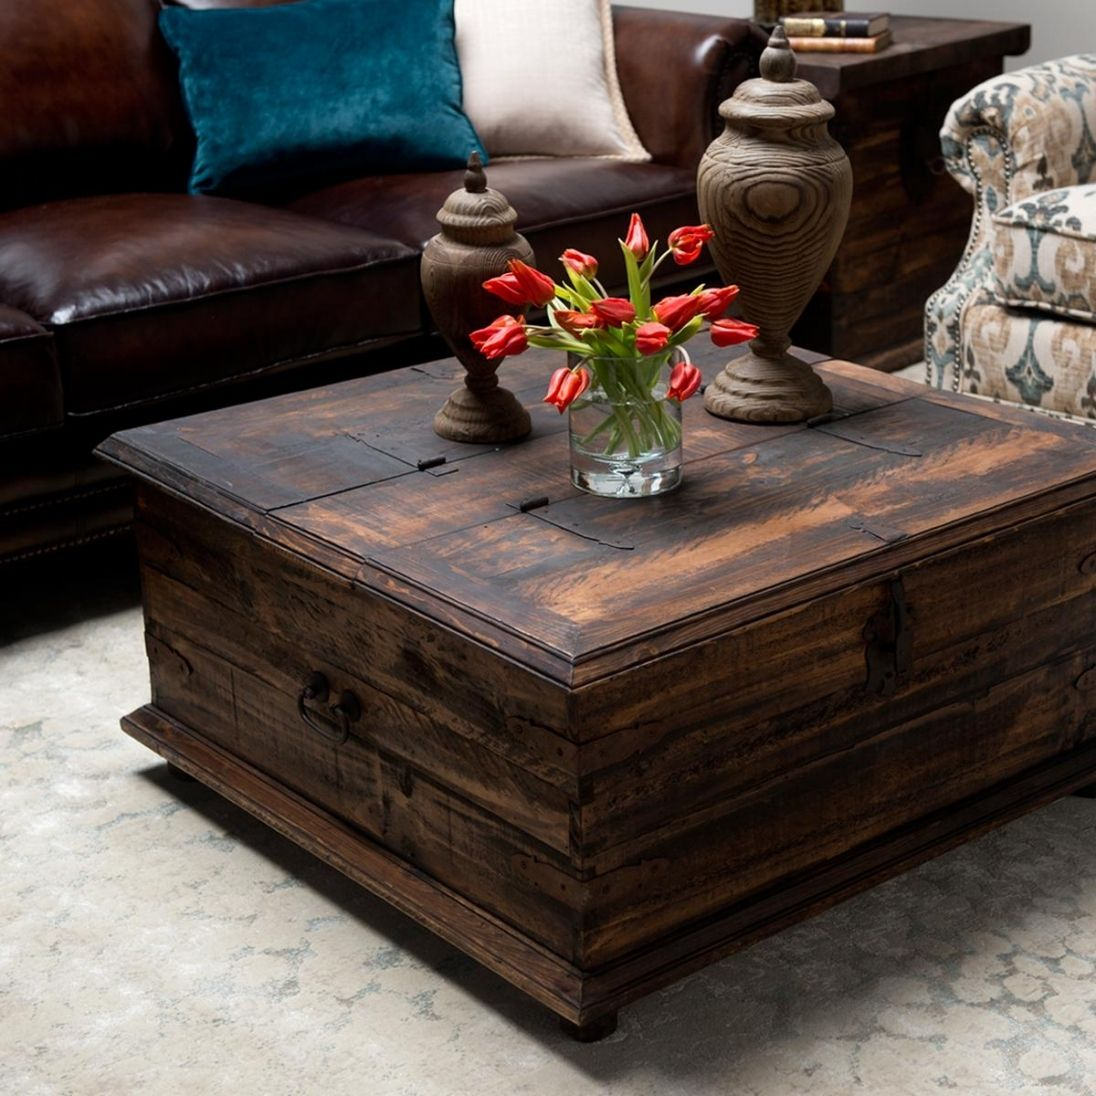 Genial Rustic Trunk Coffee Table   Modern Interior Paint Colors Check More At  Http://